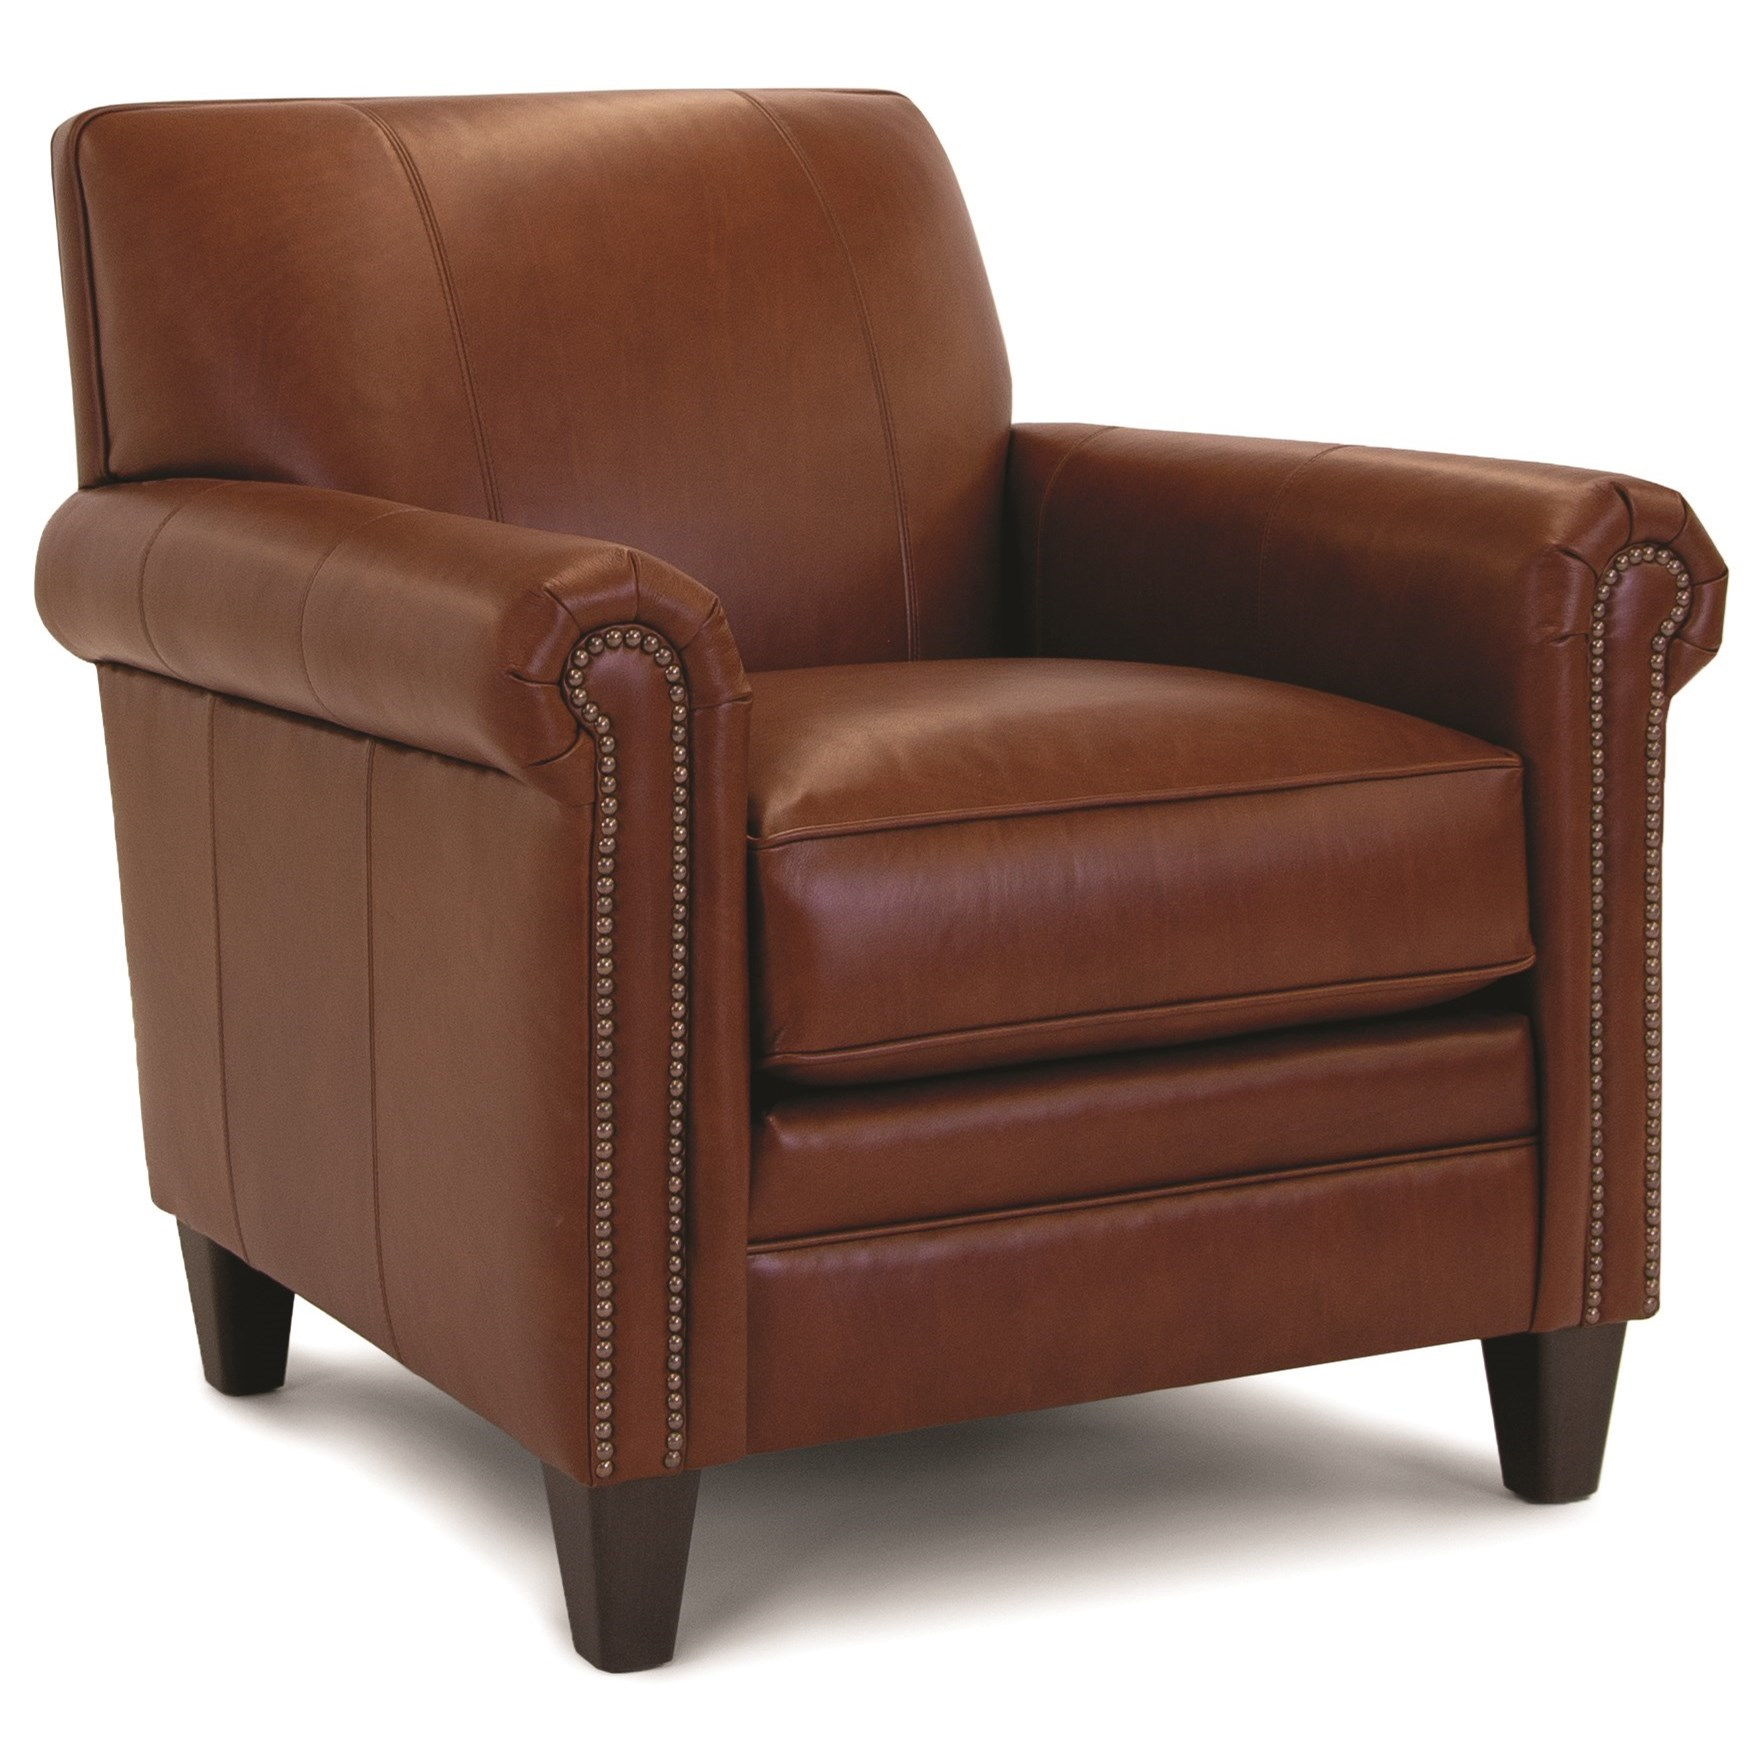 Build Your Own 3000 Series Customizable Chair by Smith Brothers at Pilgrim Furniture City